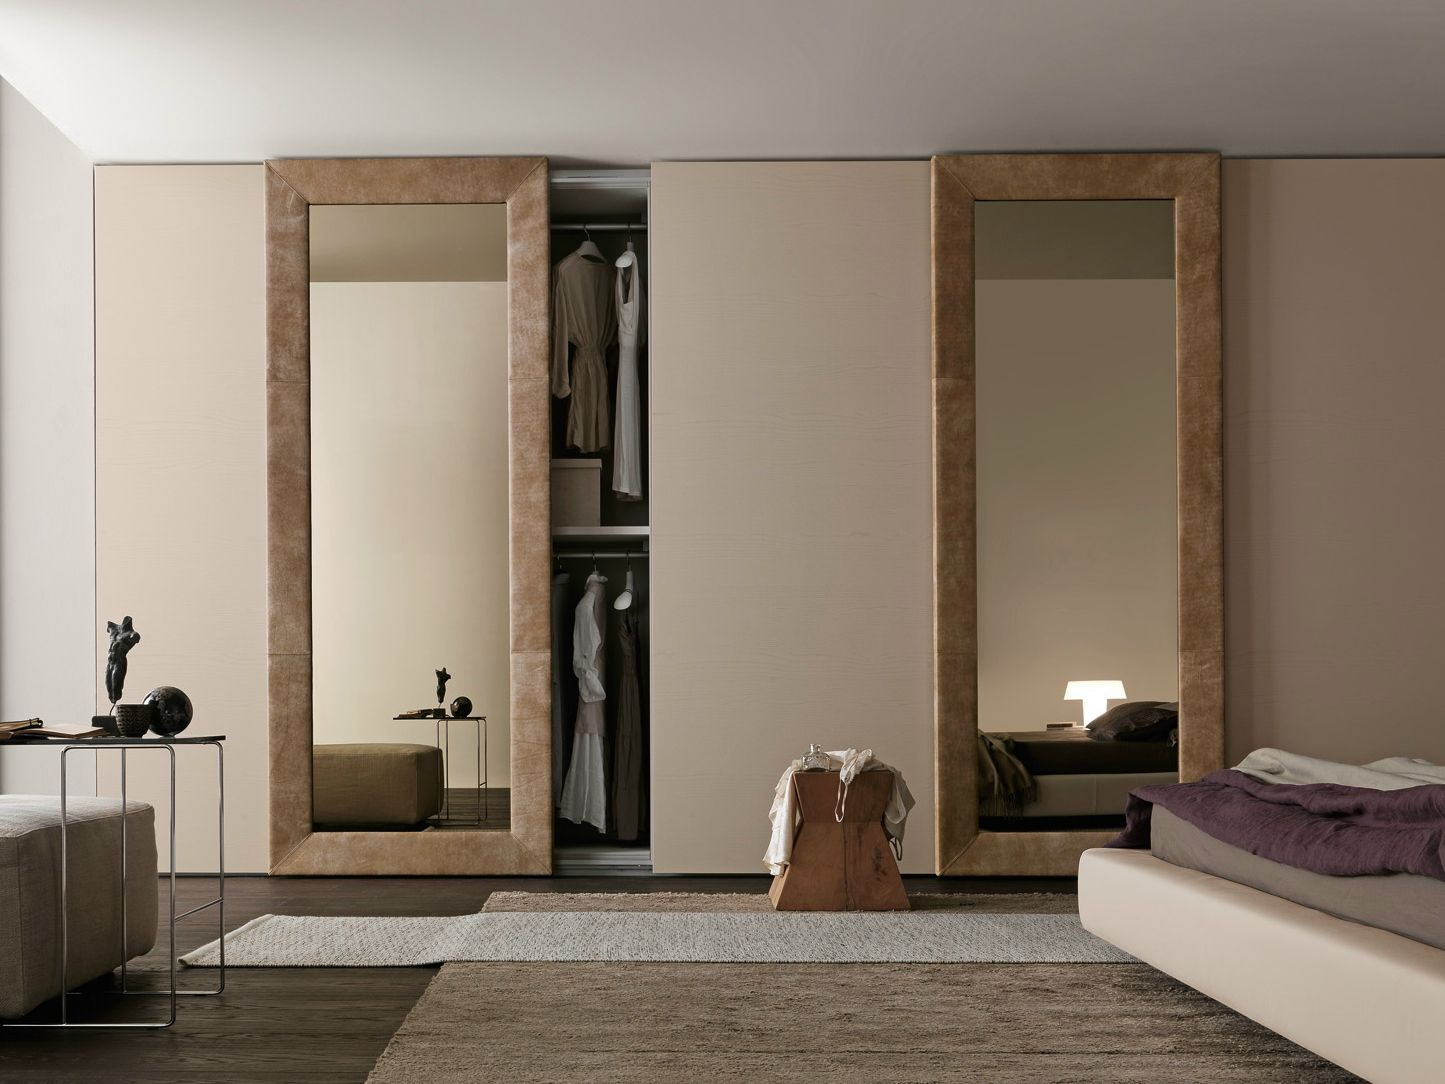 Wardrobe With Liscia Sliding Doors In Corda Color Wood And Mirror Door With  Bronze Mirror,